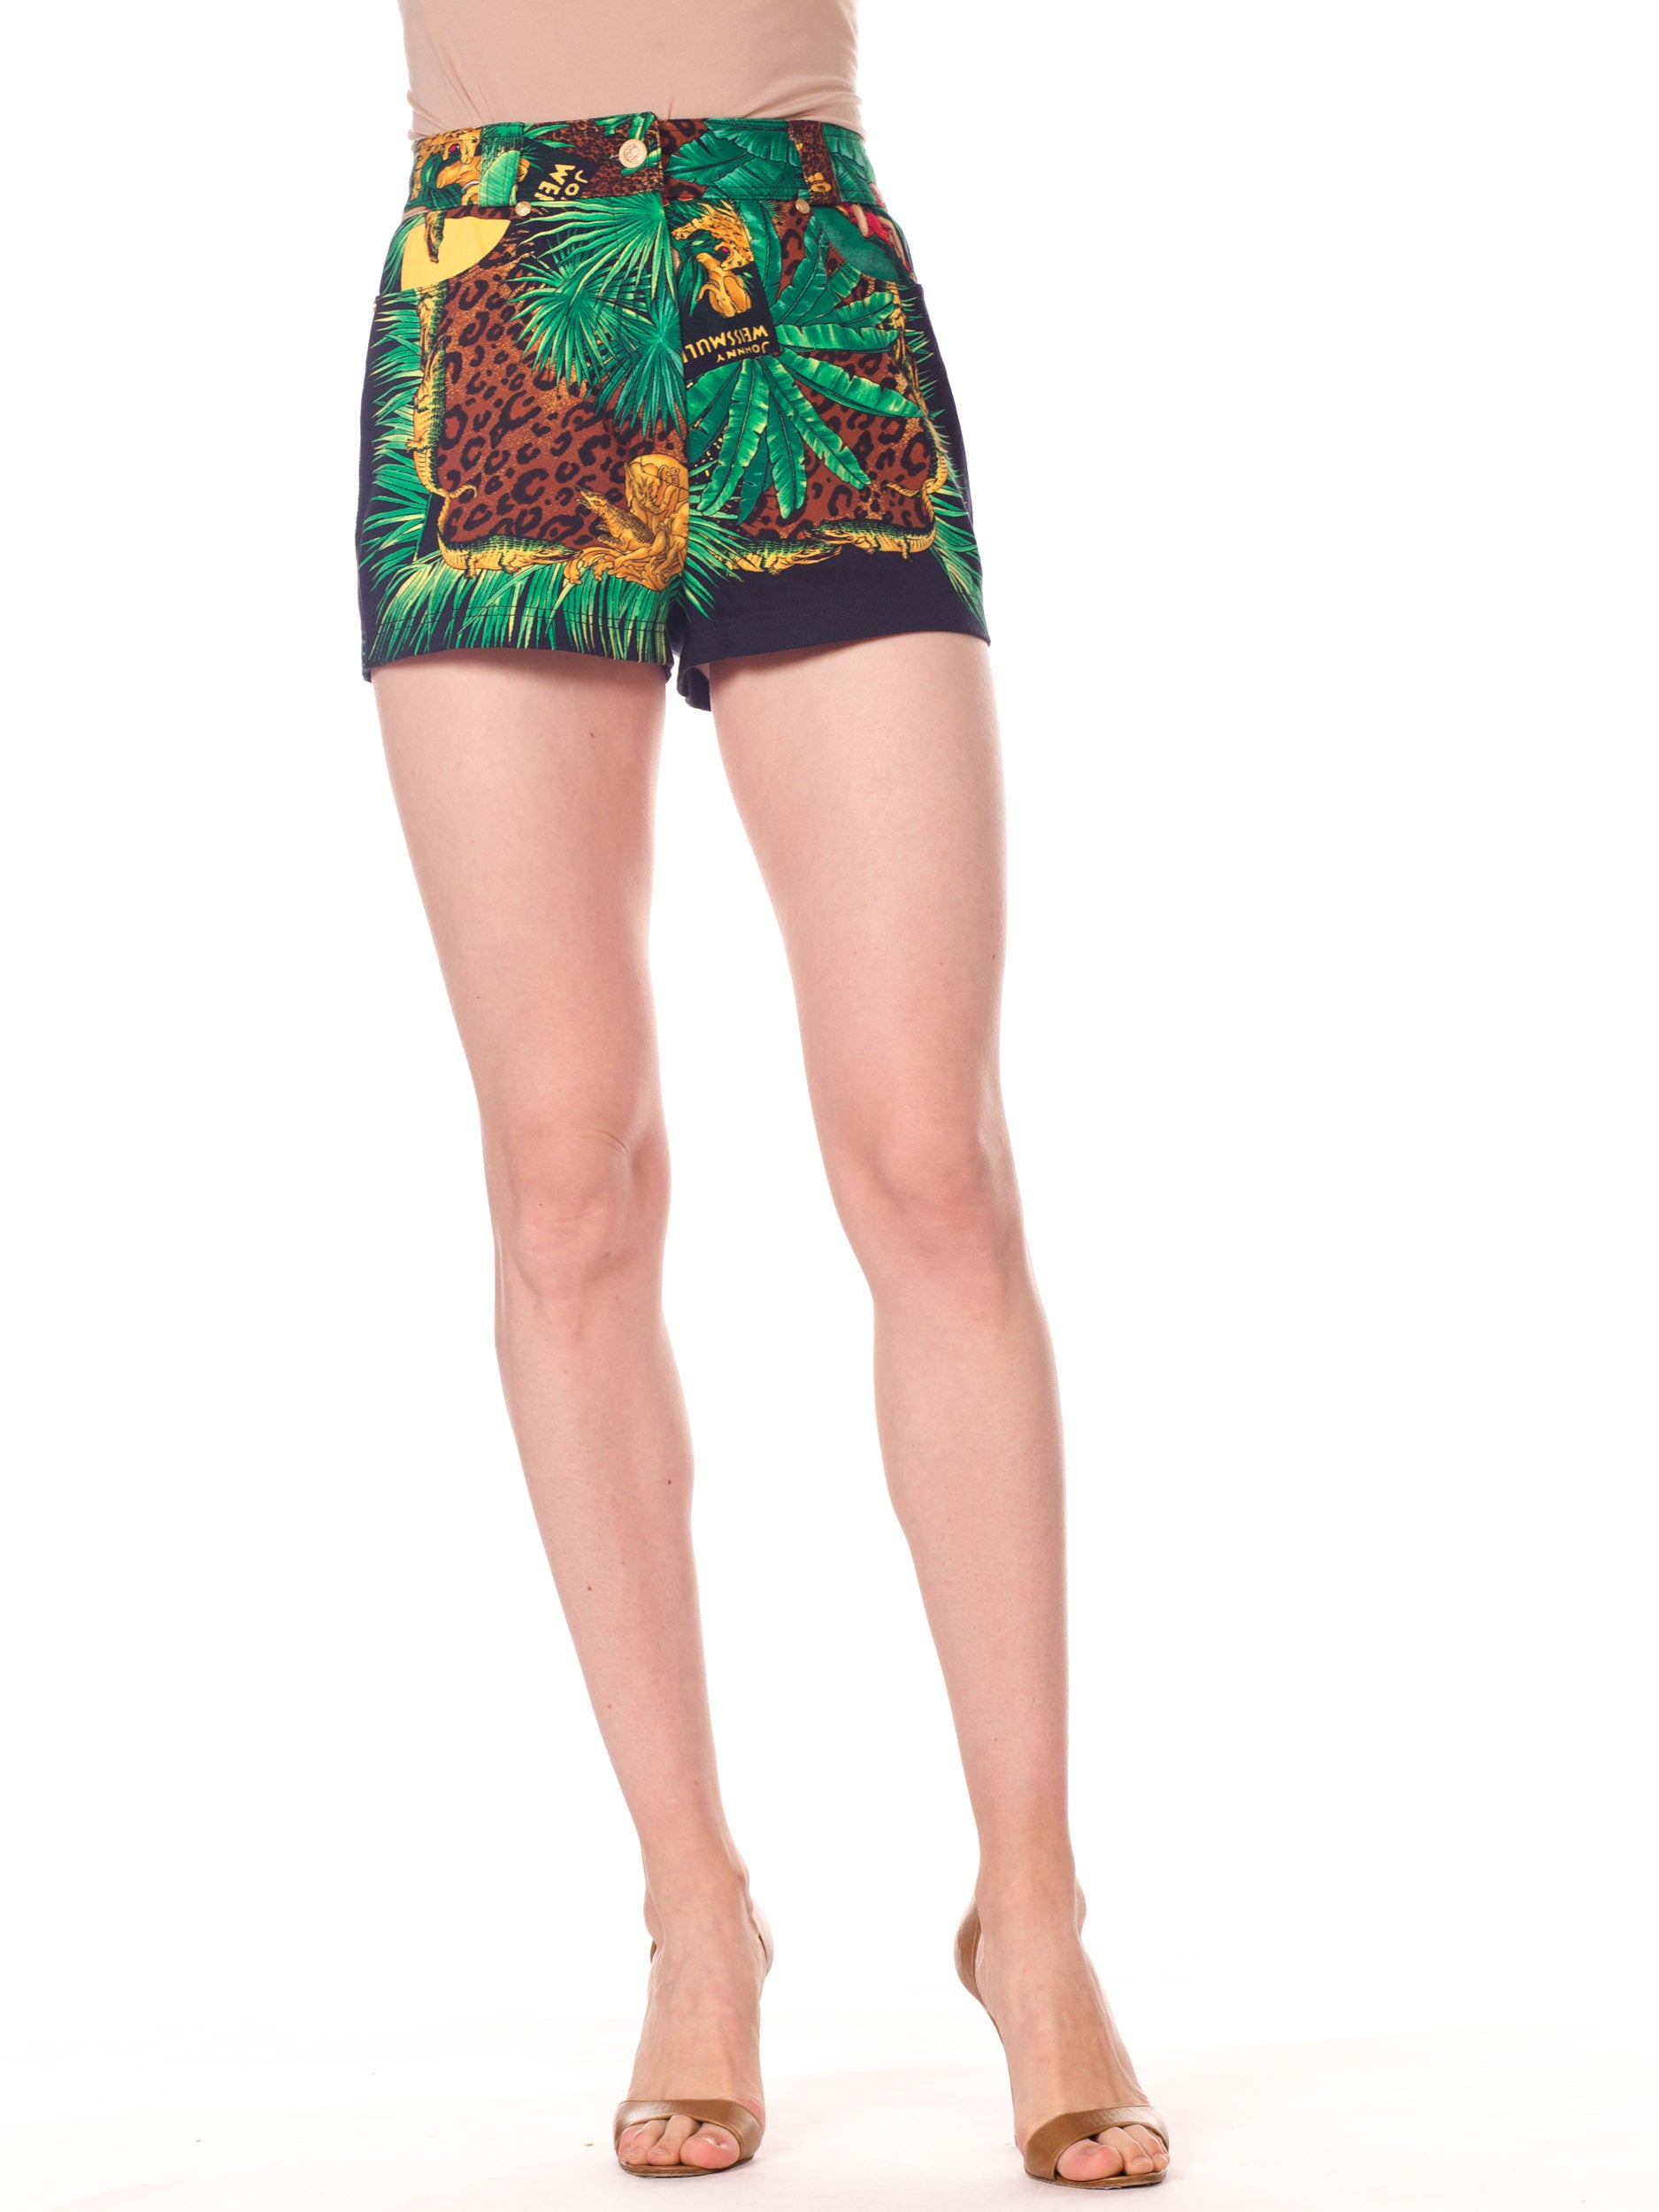 1990S Gianni Versace Cotton Denim Tarzan Leopard Jungle Print Shorts | Hamptons | 24hrs- Free Return policy | US Free Shipping | Pre-owned Clothing | Sustainable fashion | Women Vintage Clothing | Vintage Clothing Store | Vintage Versace | Vintage Shorts